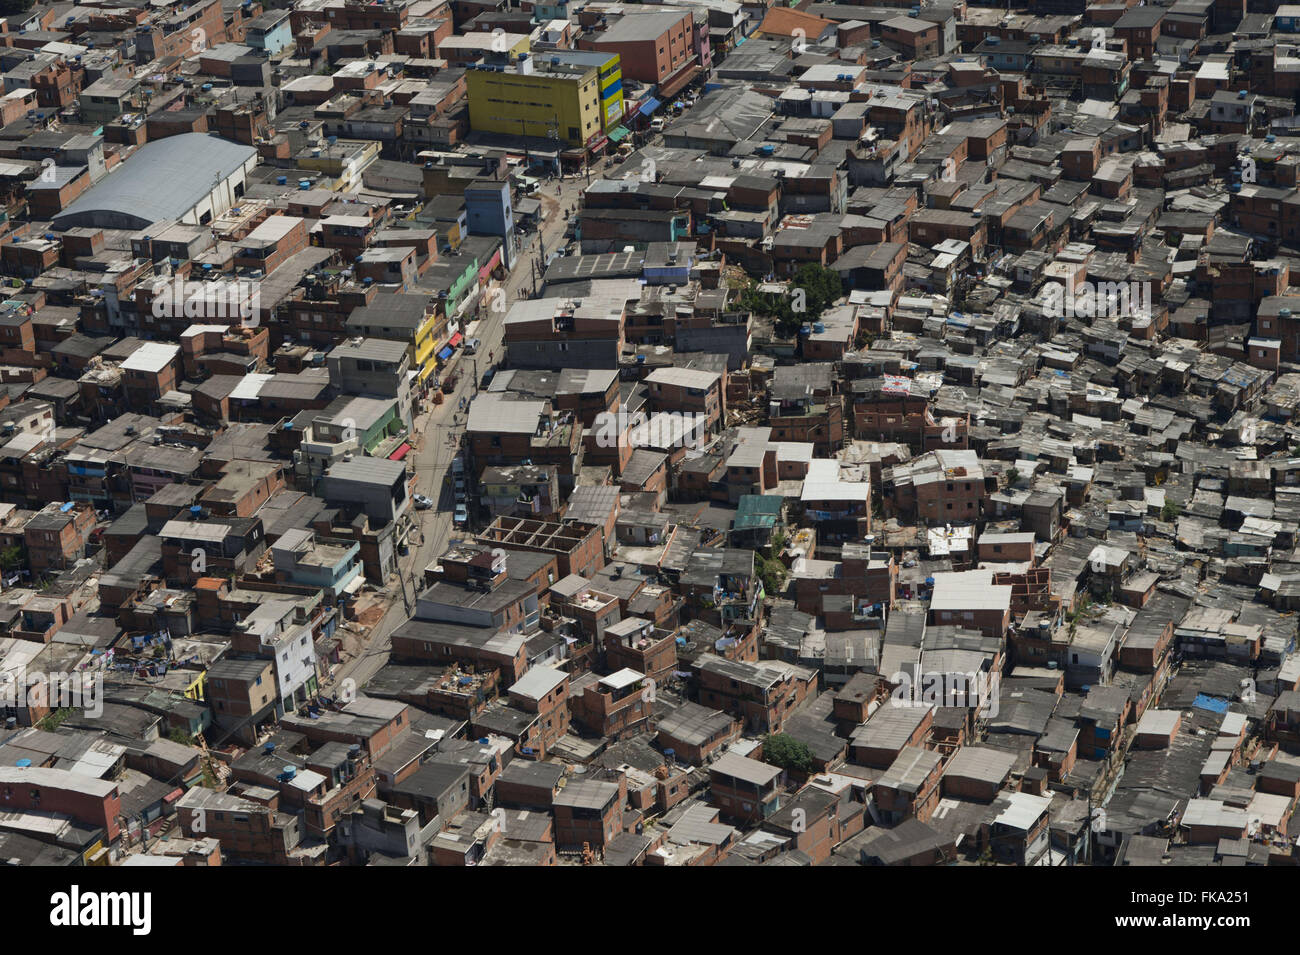 Aerial view of the slum urbanized area with design by New Paraisópolis - Stock Image